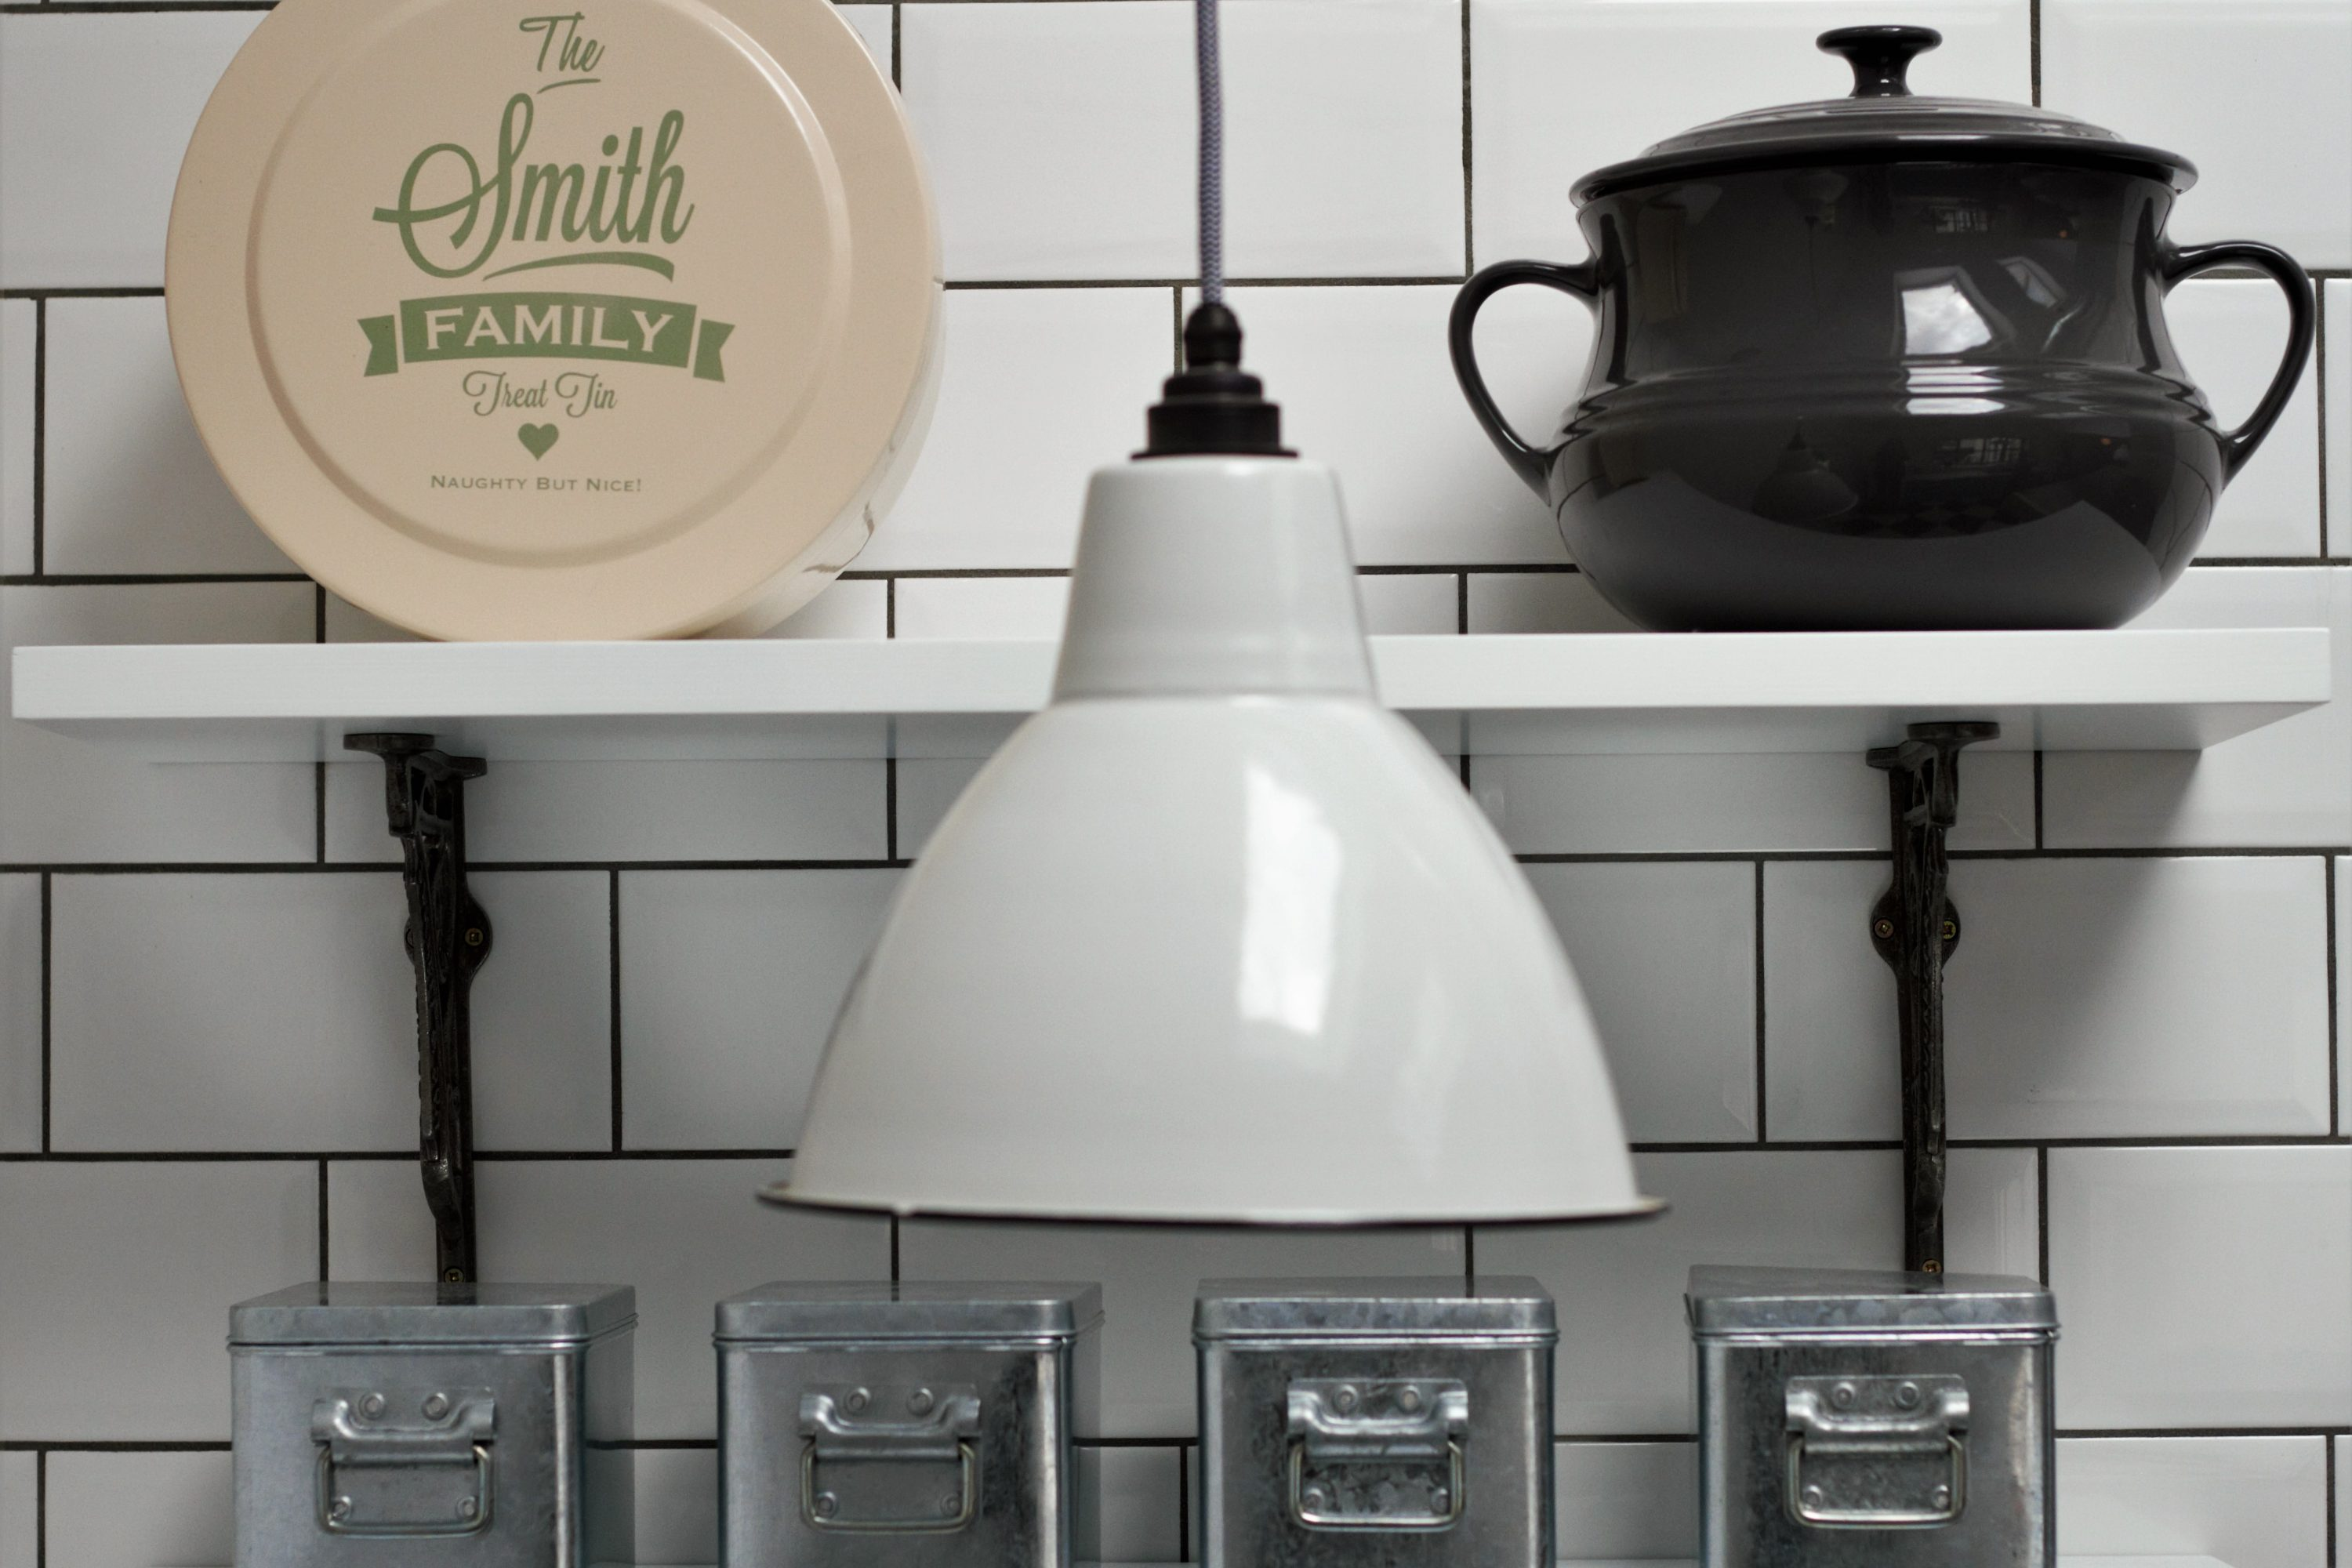 Smith Industrial Kitchen with American Diner Feel - Sustainable Kitchens